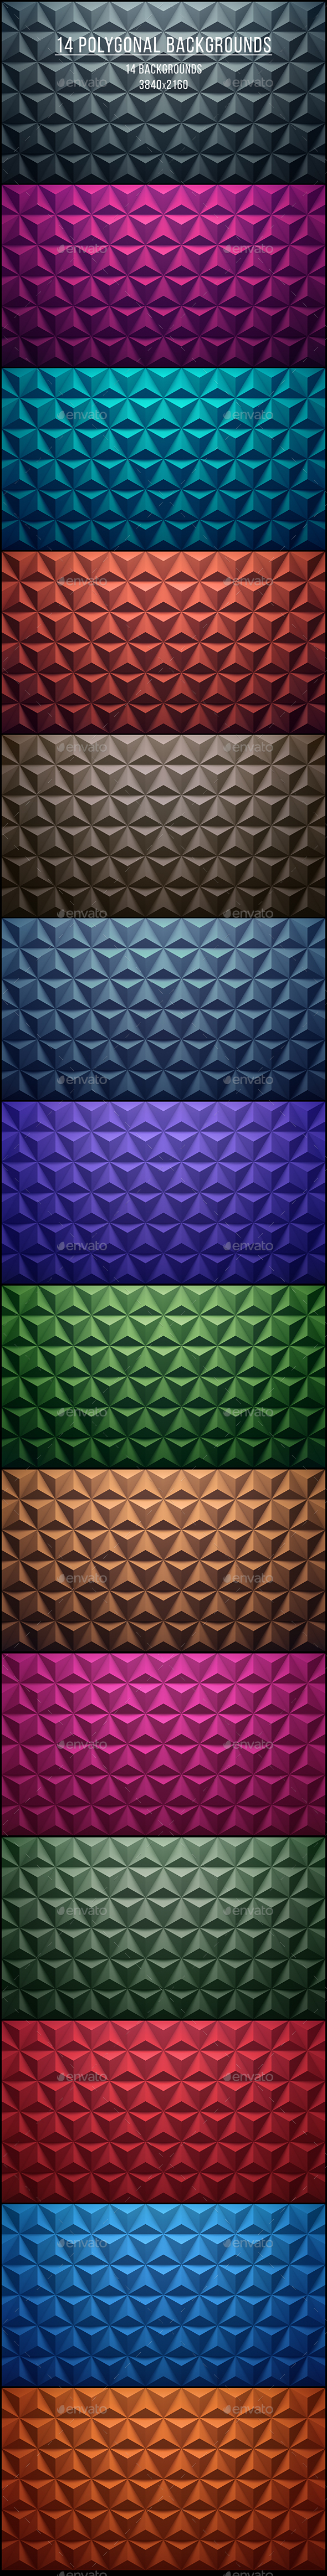 14 Polygonal Backgrounds